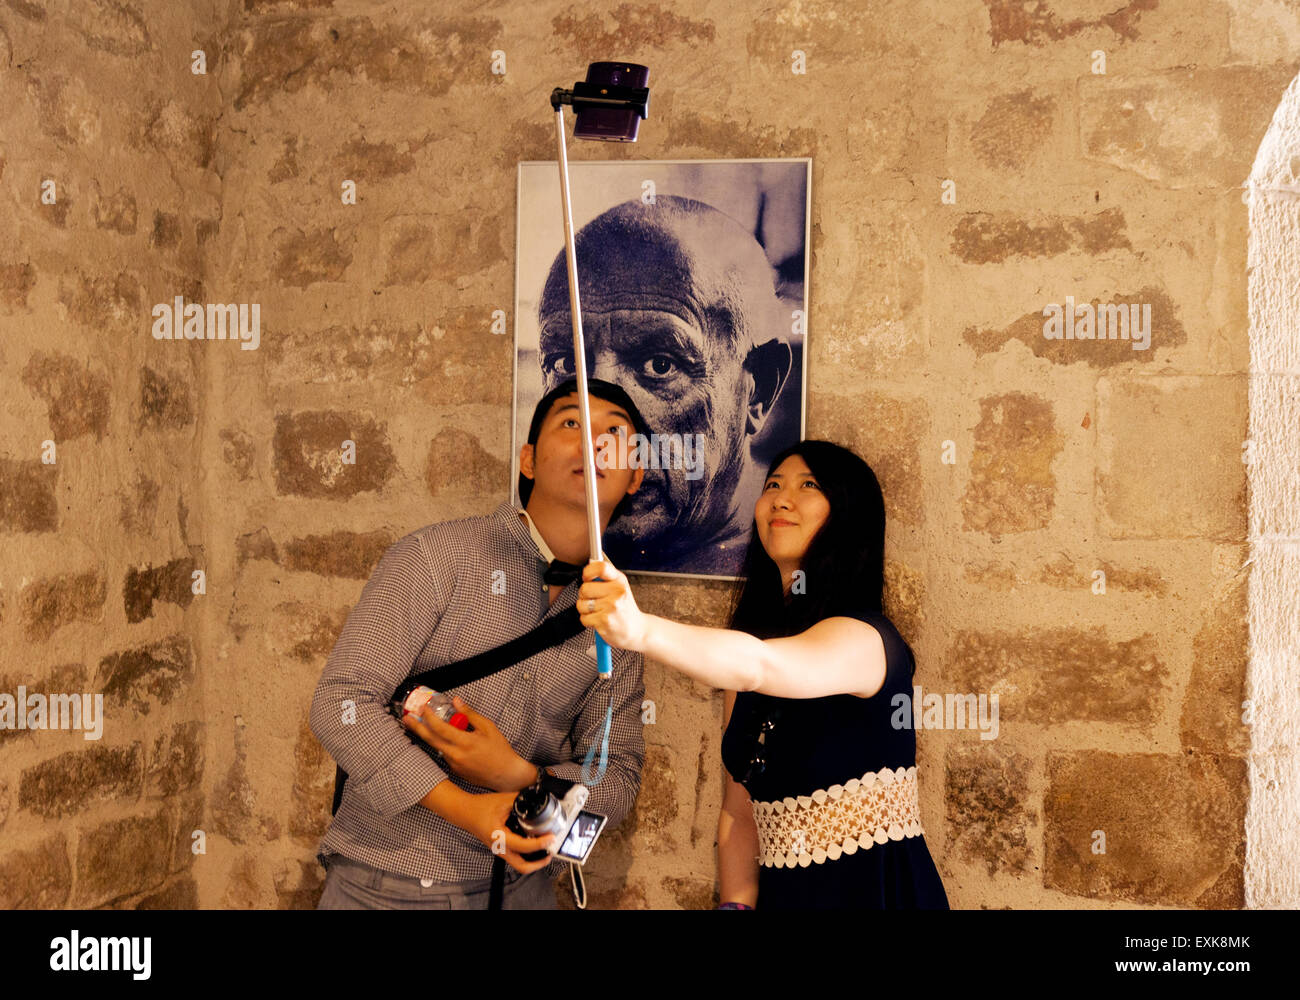 Asian tourists taking a selfie with a selfie stick with a photograph of Picasso,  Museu Picasso Museum, Barcelona - Stock Image